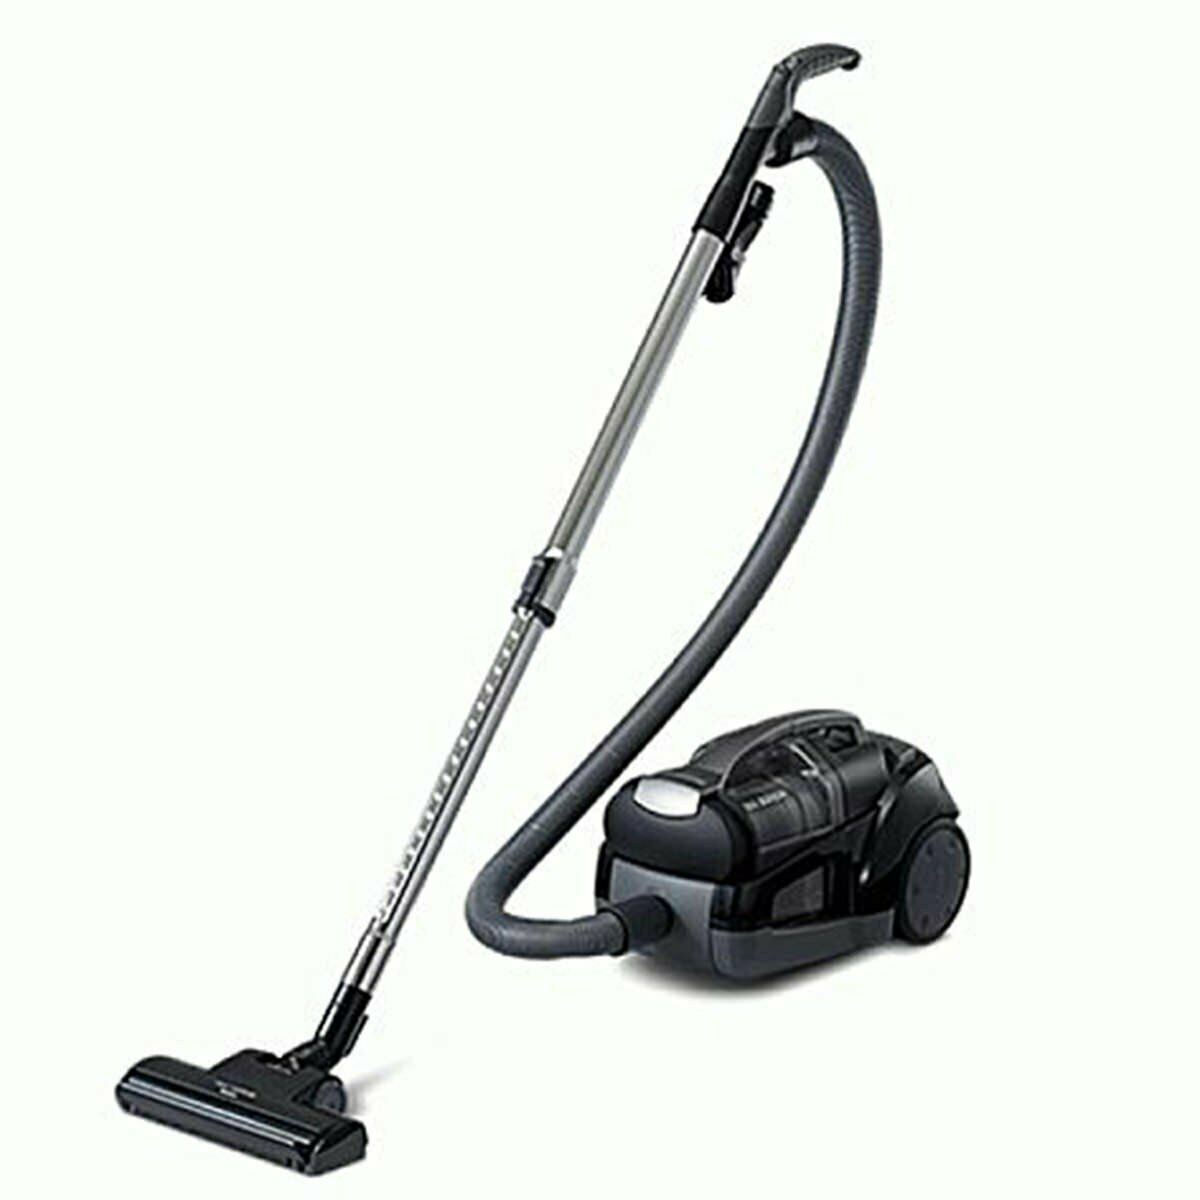 Panasonic MC-CL565 Bagless Vacuum Cleaner  220 Volts Export Only